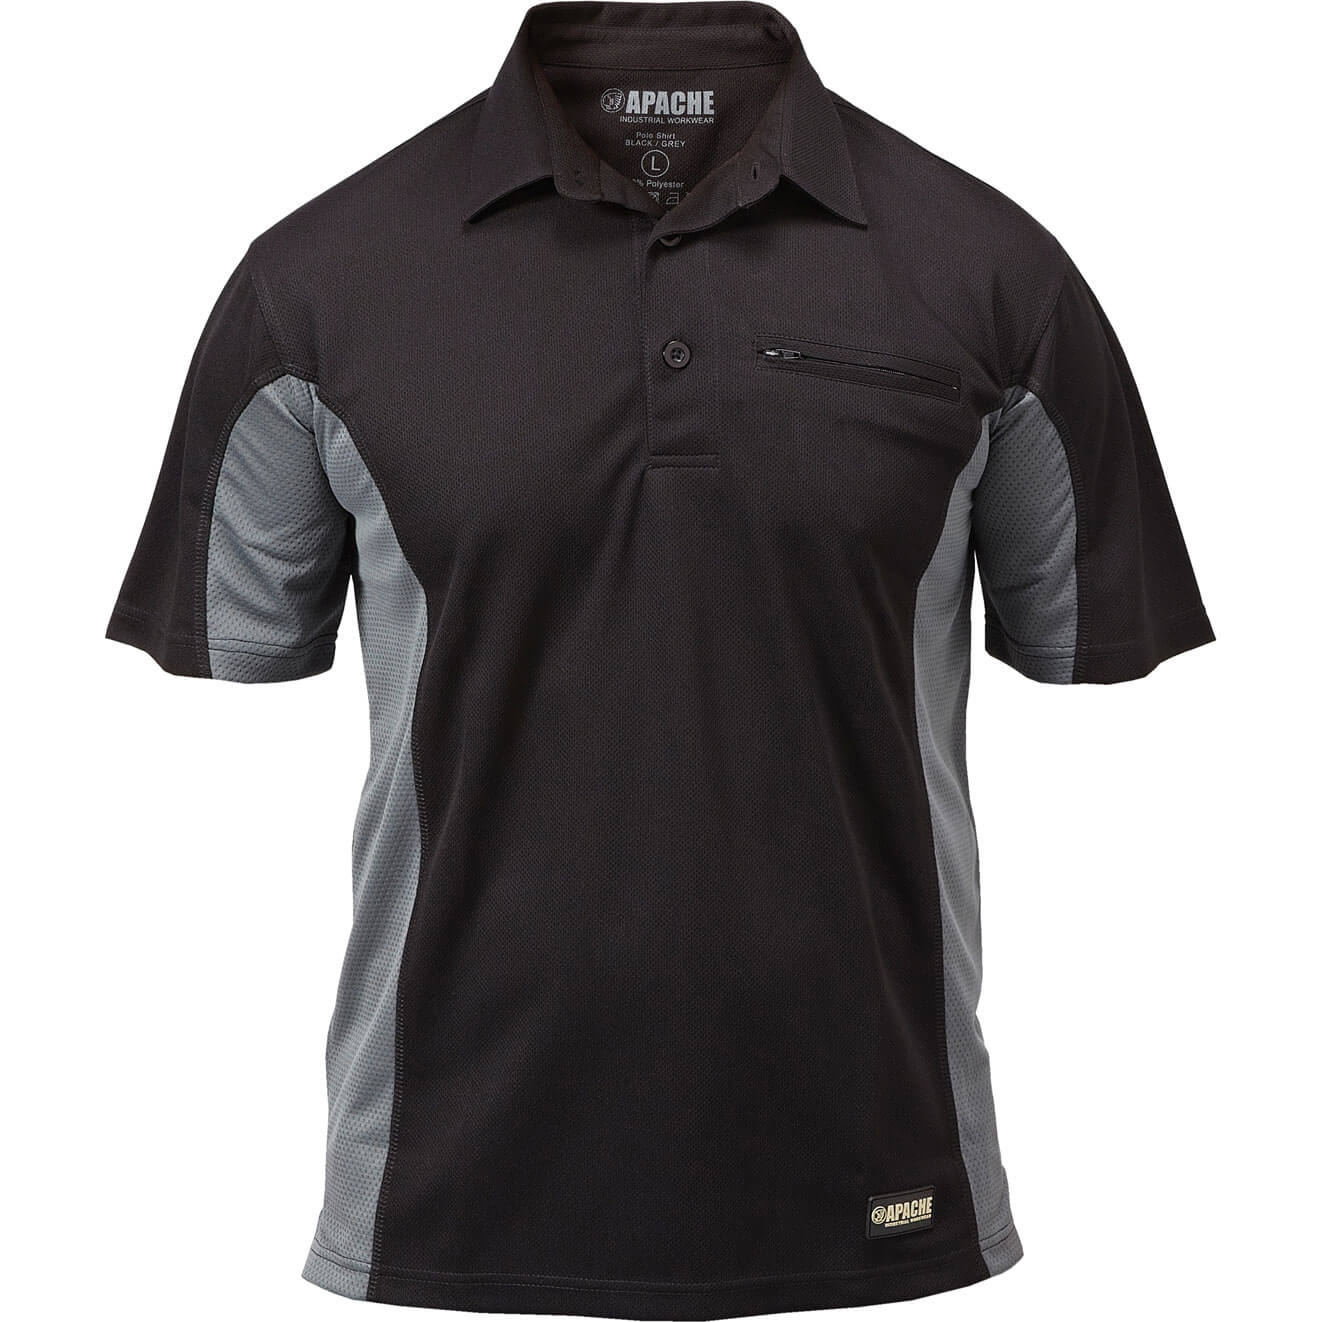 Apache Mens Dry Max Polo T Shirt Black / Grey 2XL